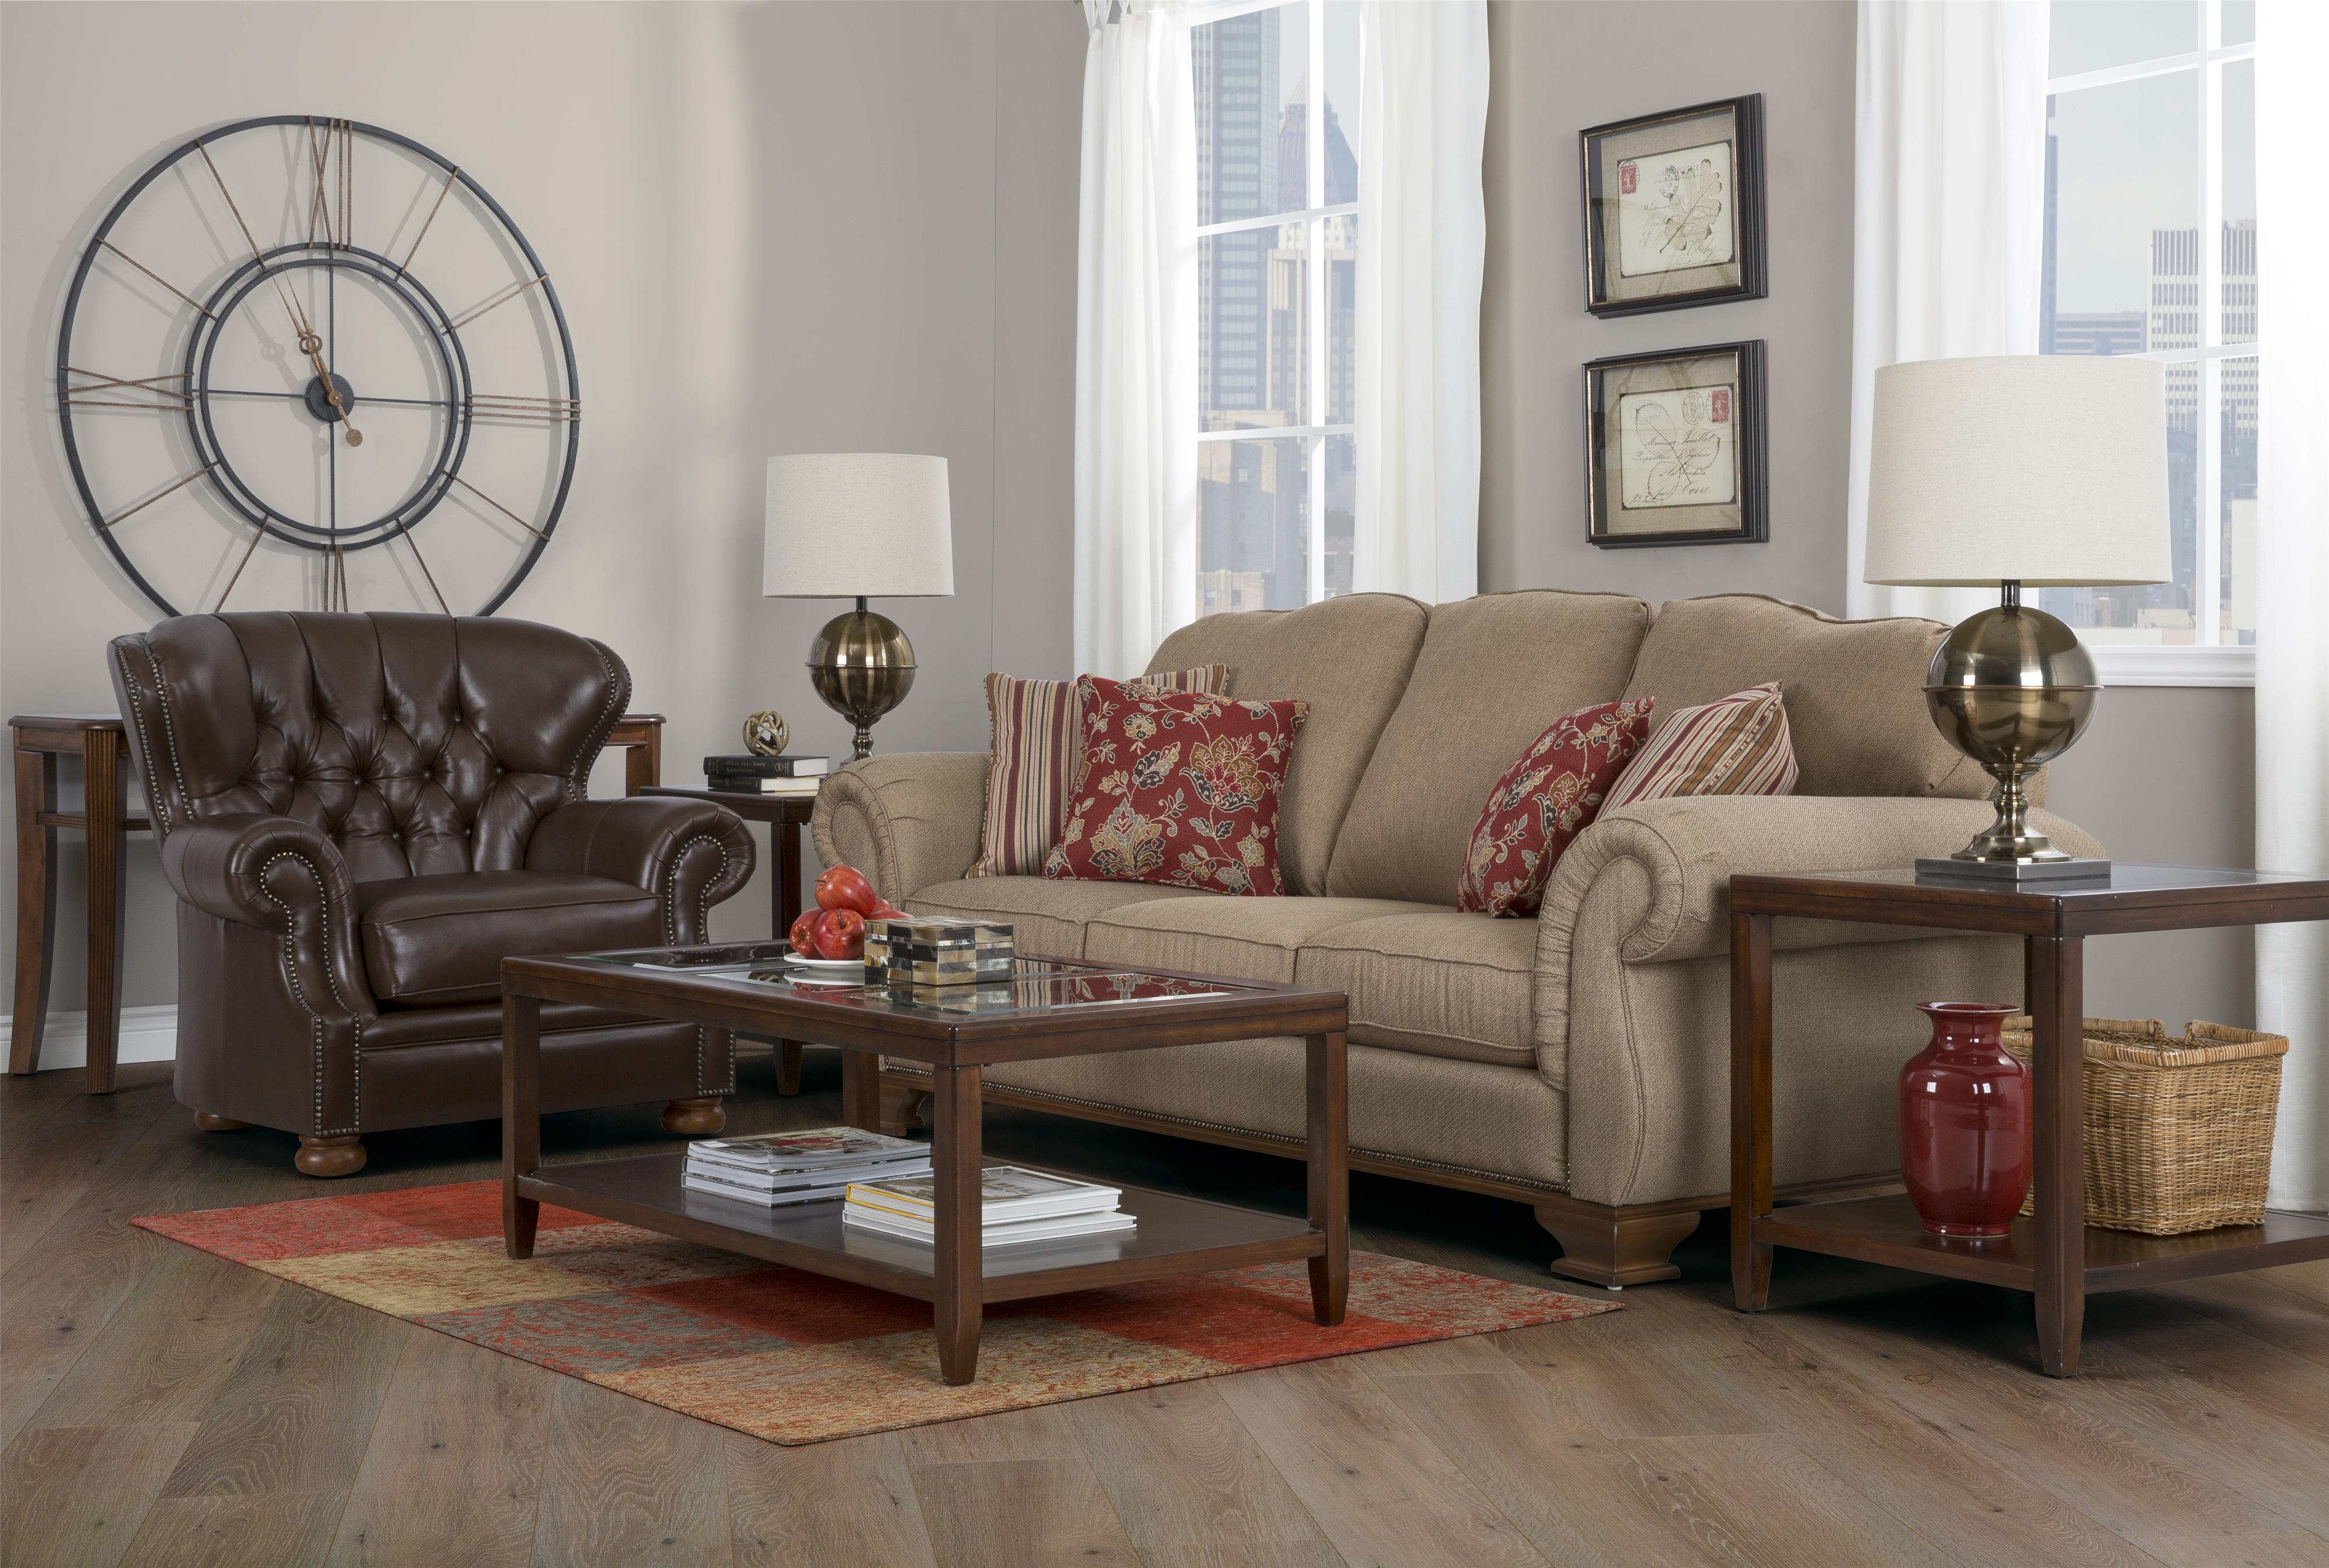 Decor Rest 6933 Traditional Sofa With Exposed Wood Accents